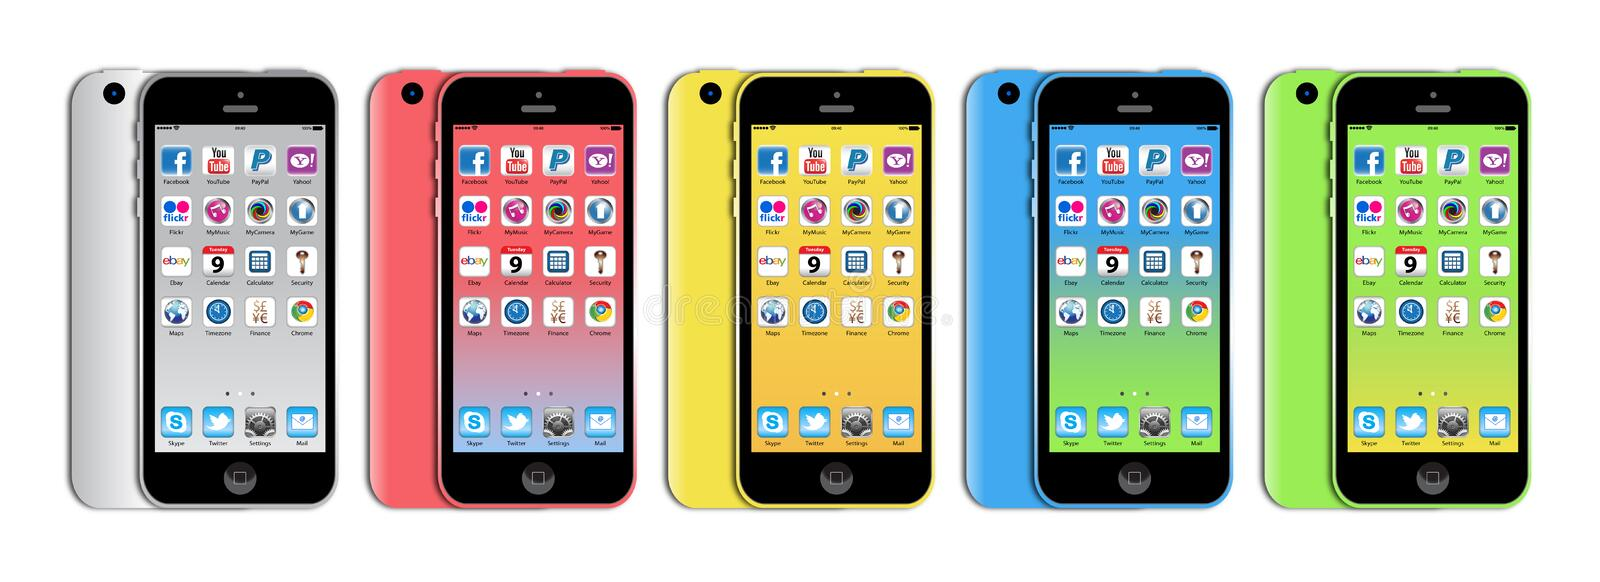 Iphone novo 5c de Apple